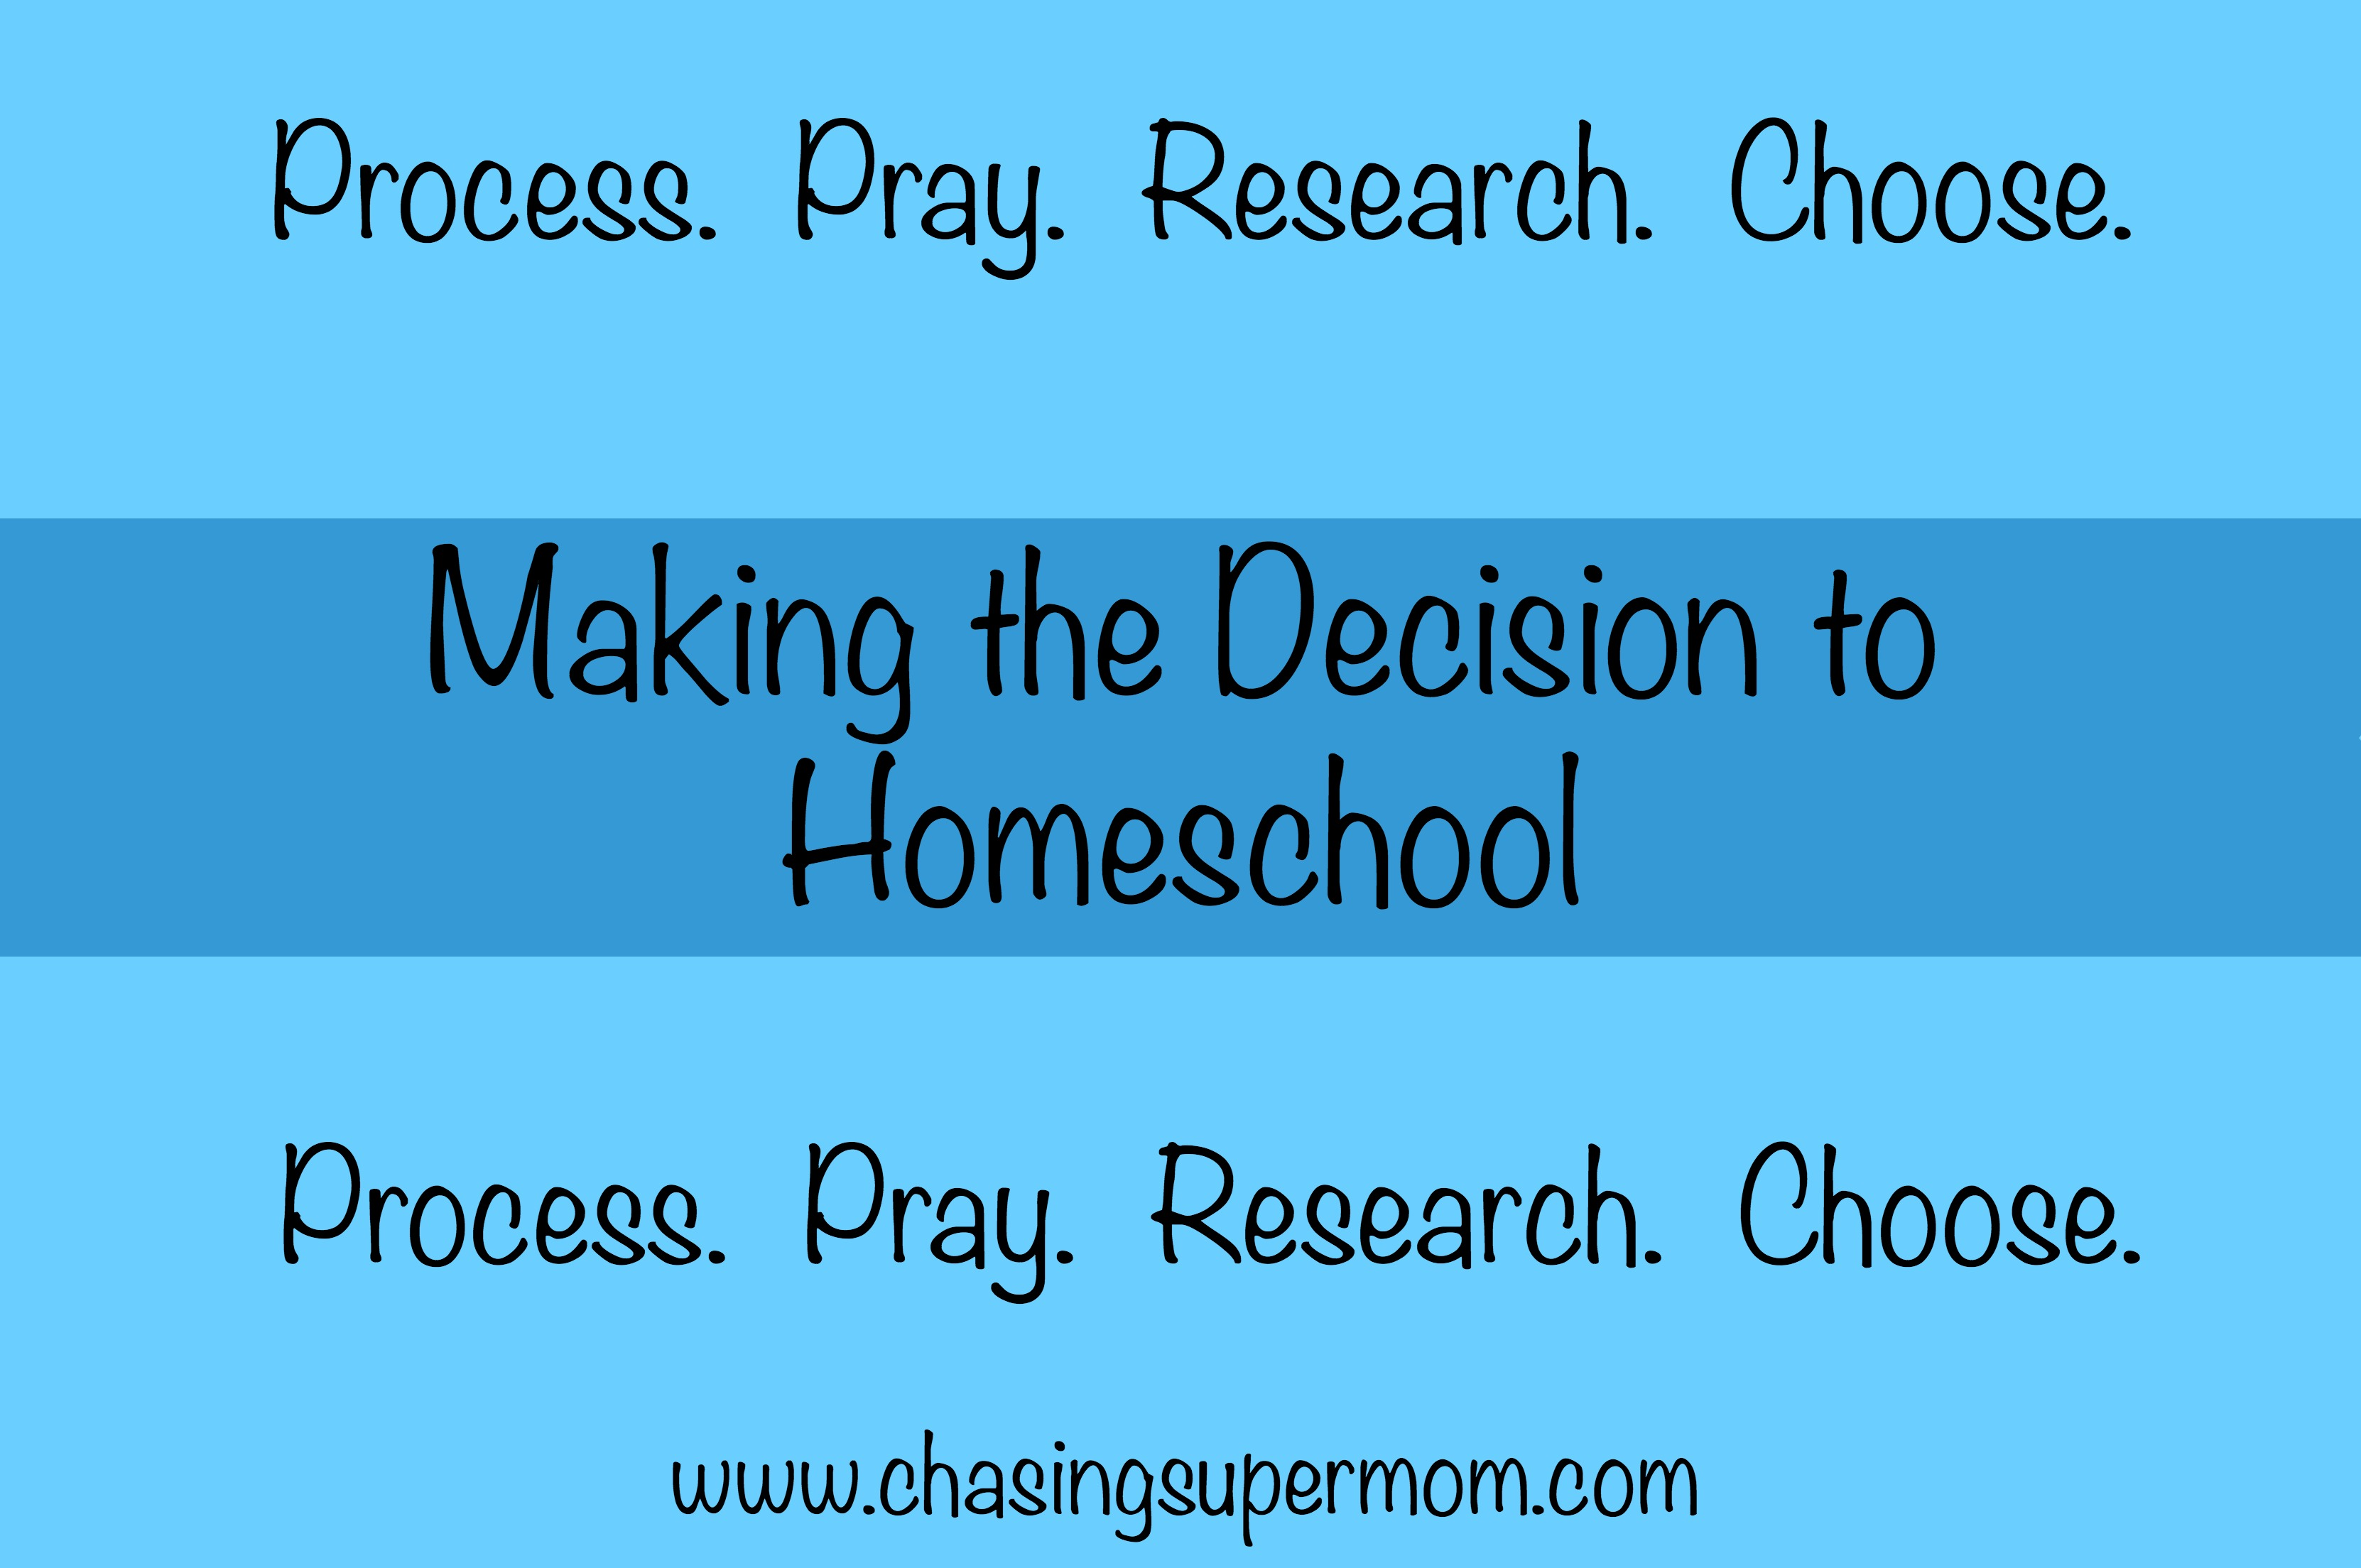 Process. Pray. Research. Choose. Making the Decision to Homeschool